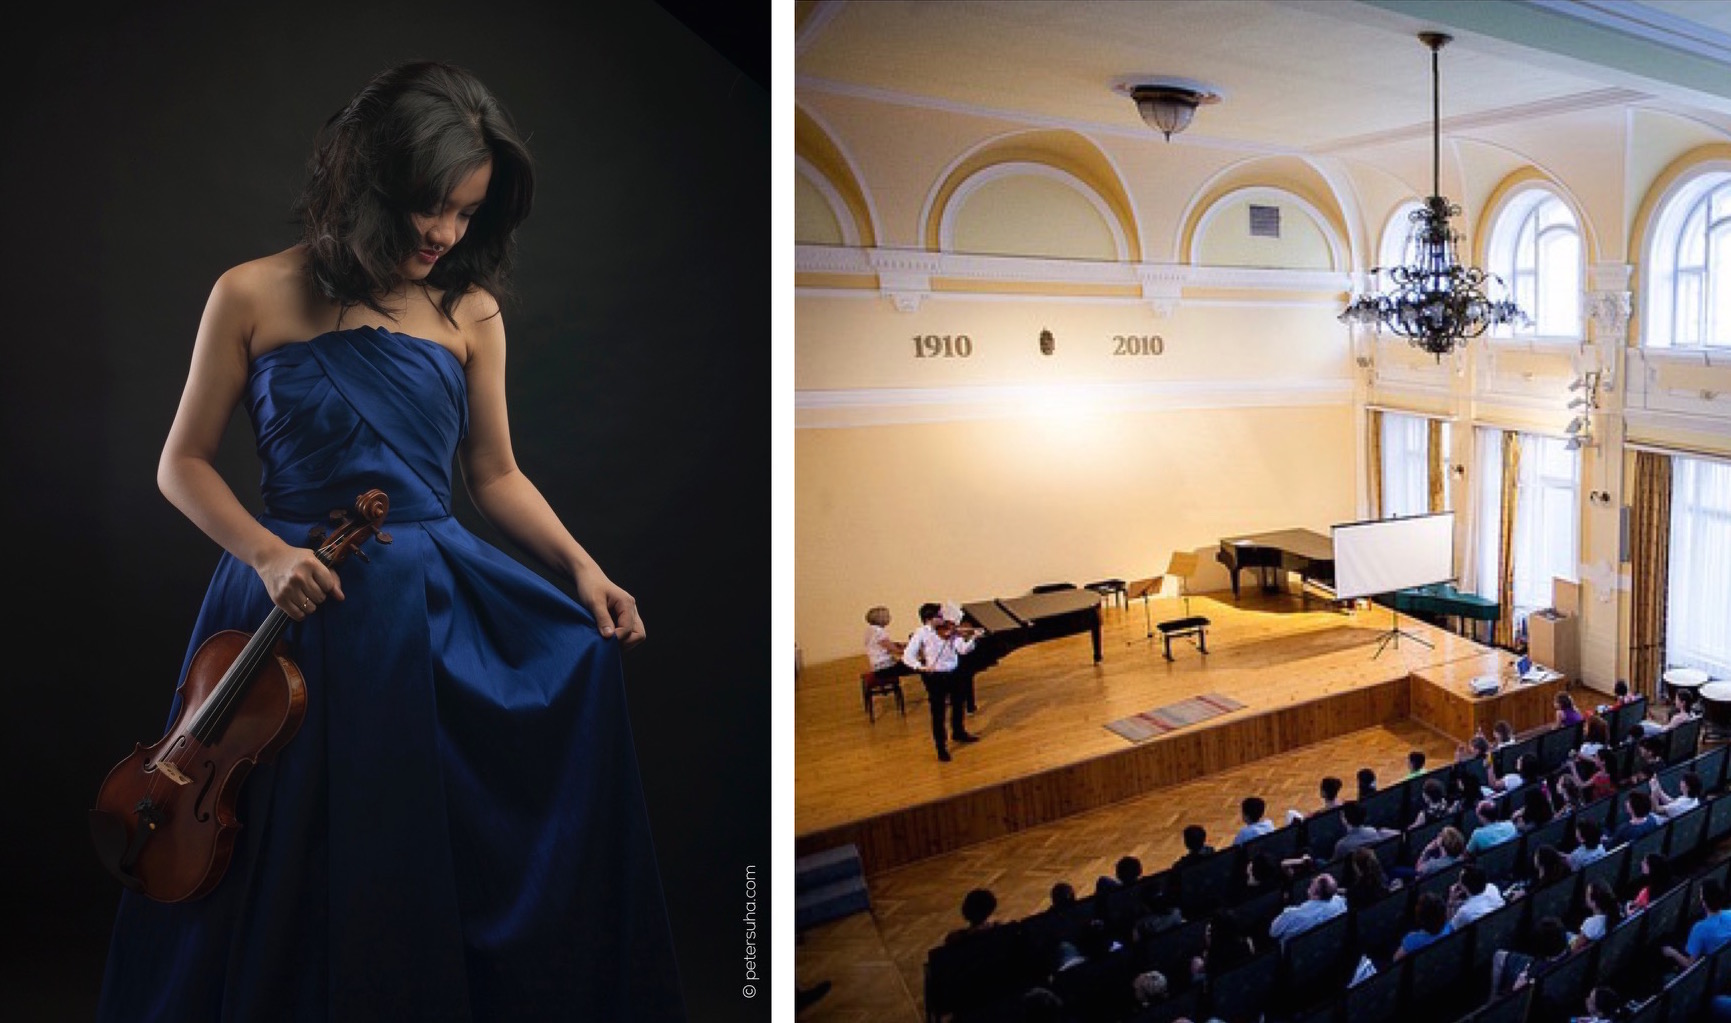 'New Millennium International Chamber Music Festival' In Budapest, 30 Aug – 3 Sept